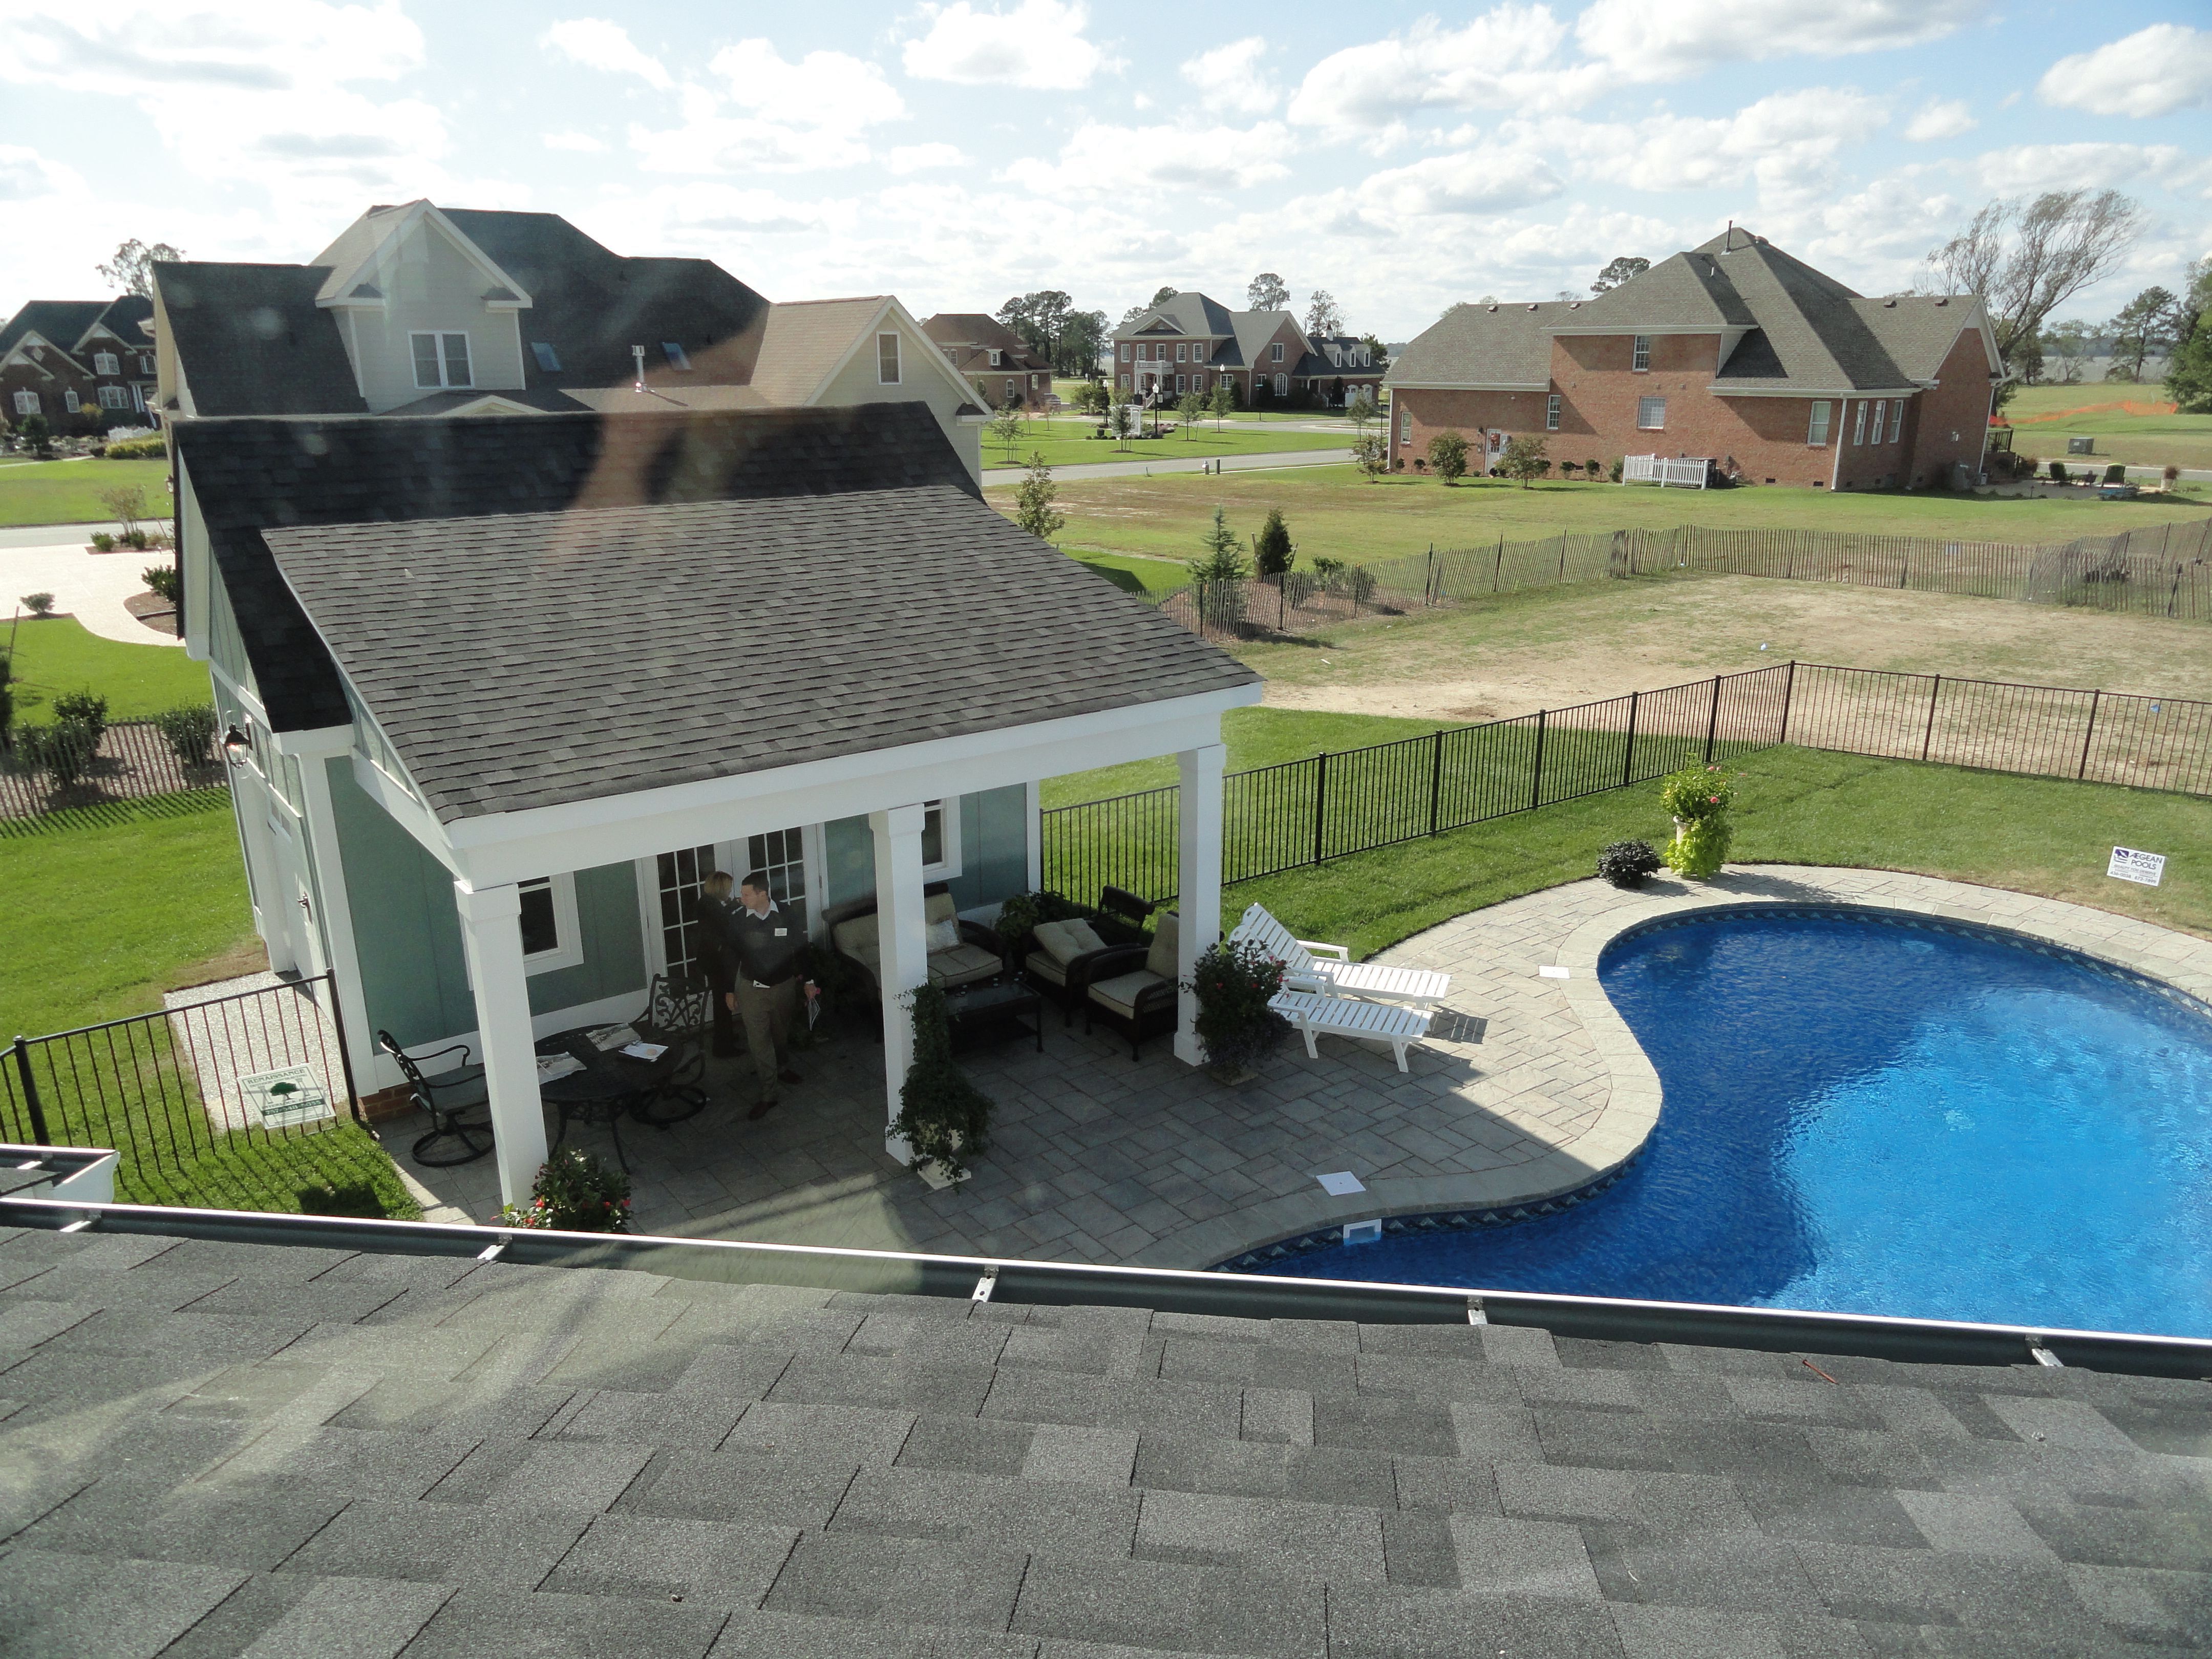 Pin By Nancy Tranberg On K R Ms House Pool House Shed Pool Shed Pool Houses